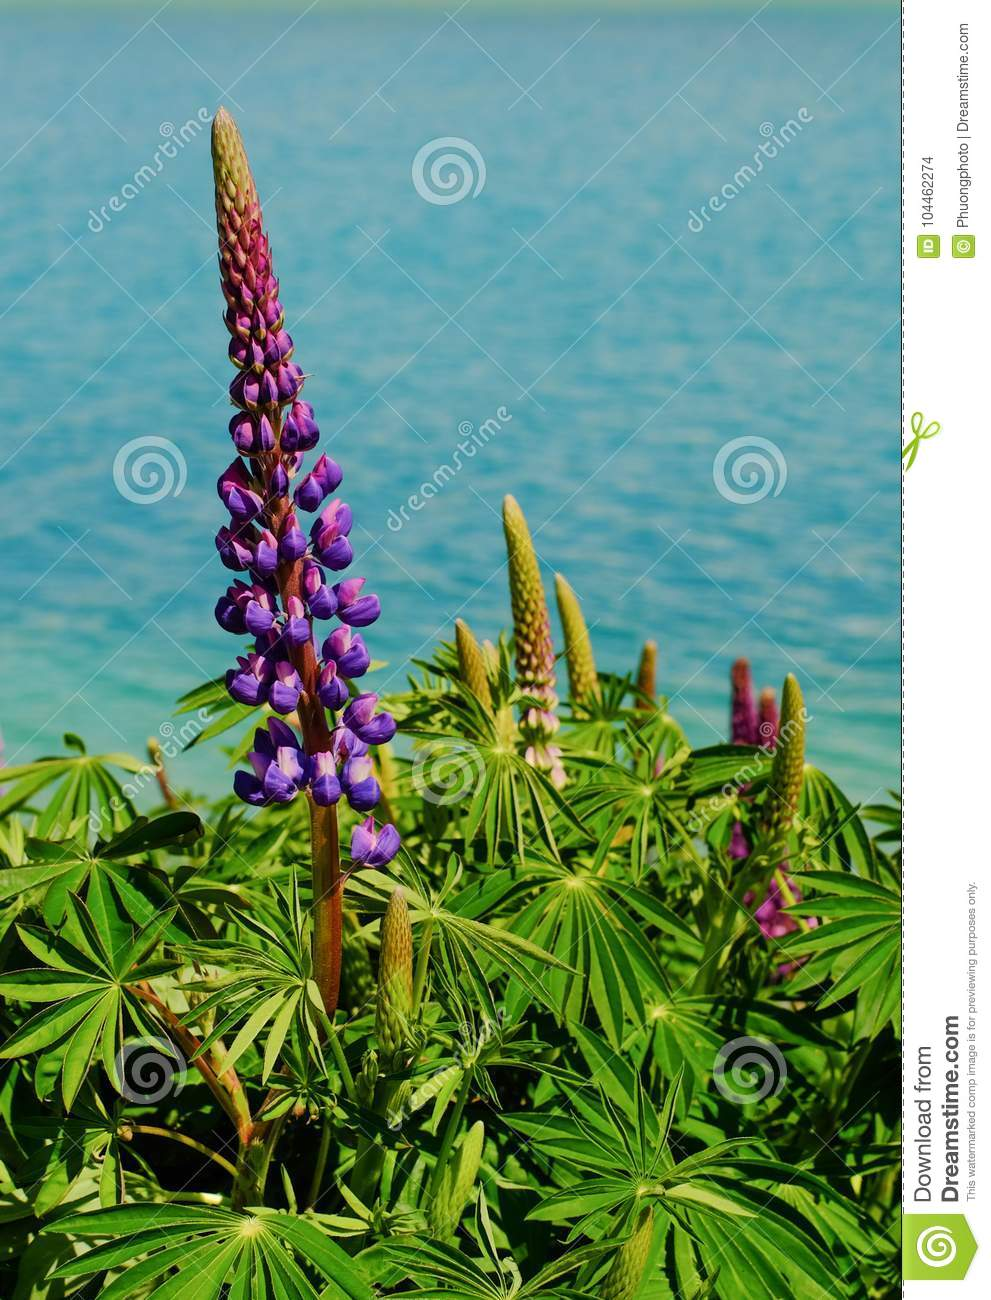 Colorful Lupine Flowers In New Zealand Stock Photo Image Of Petals